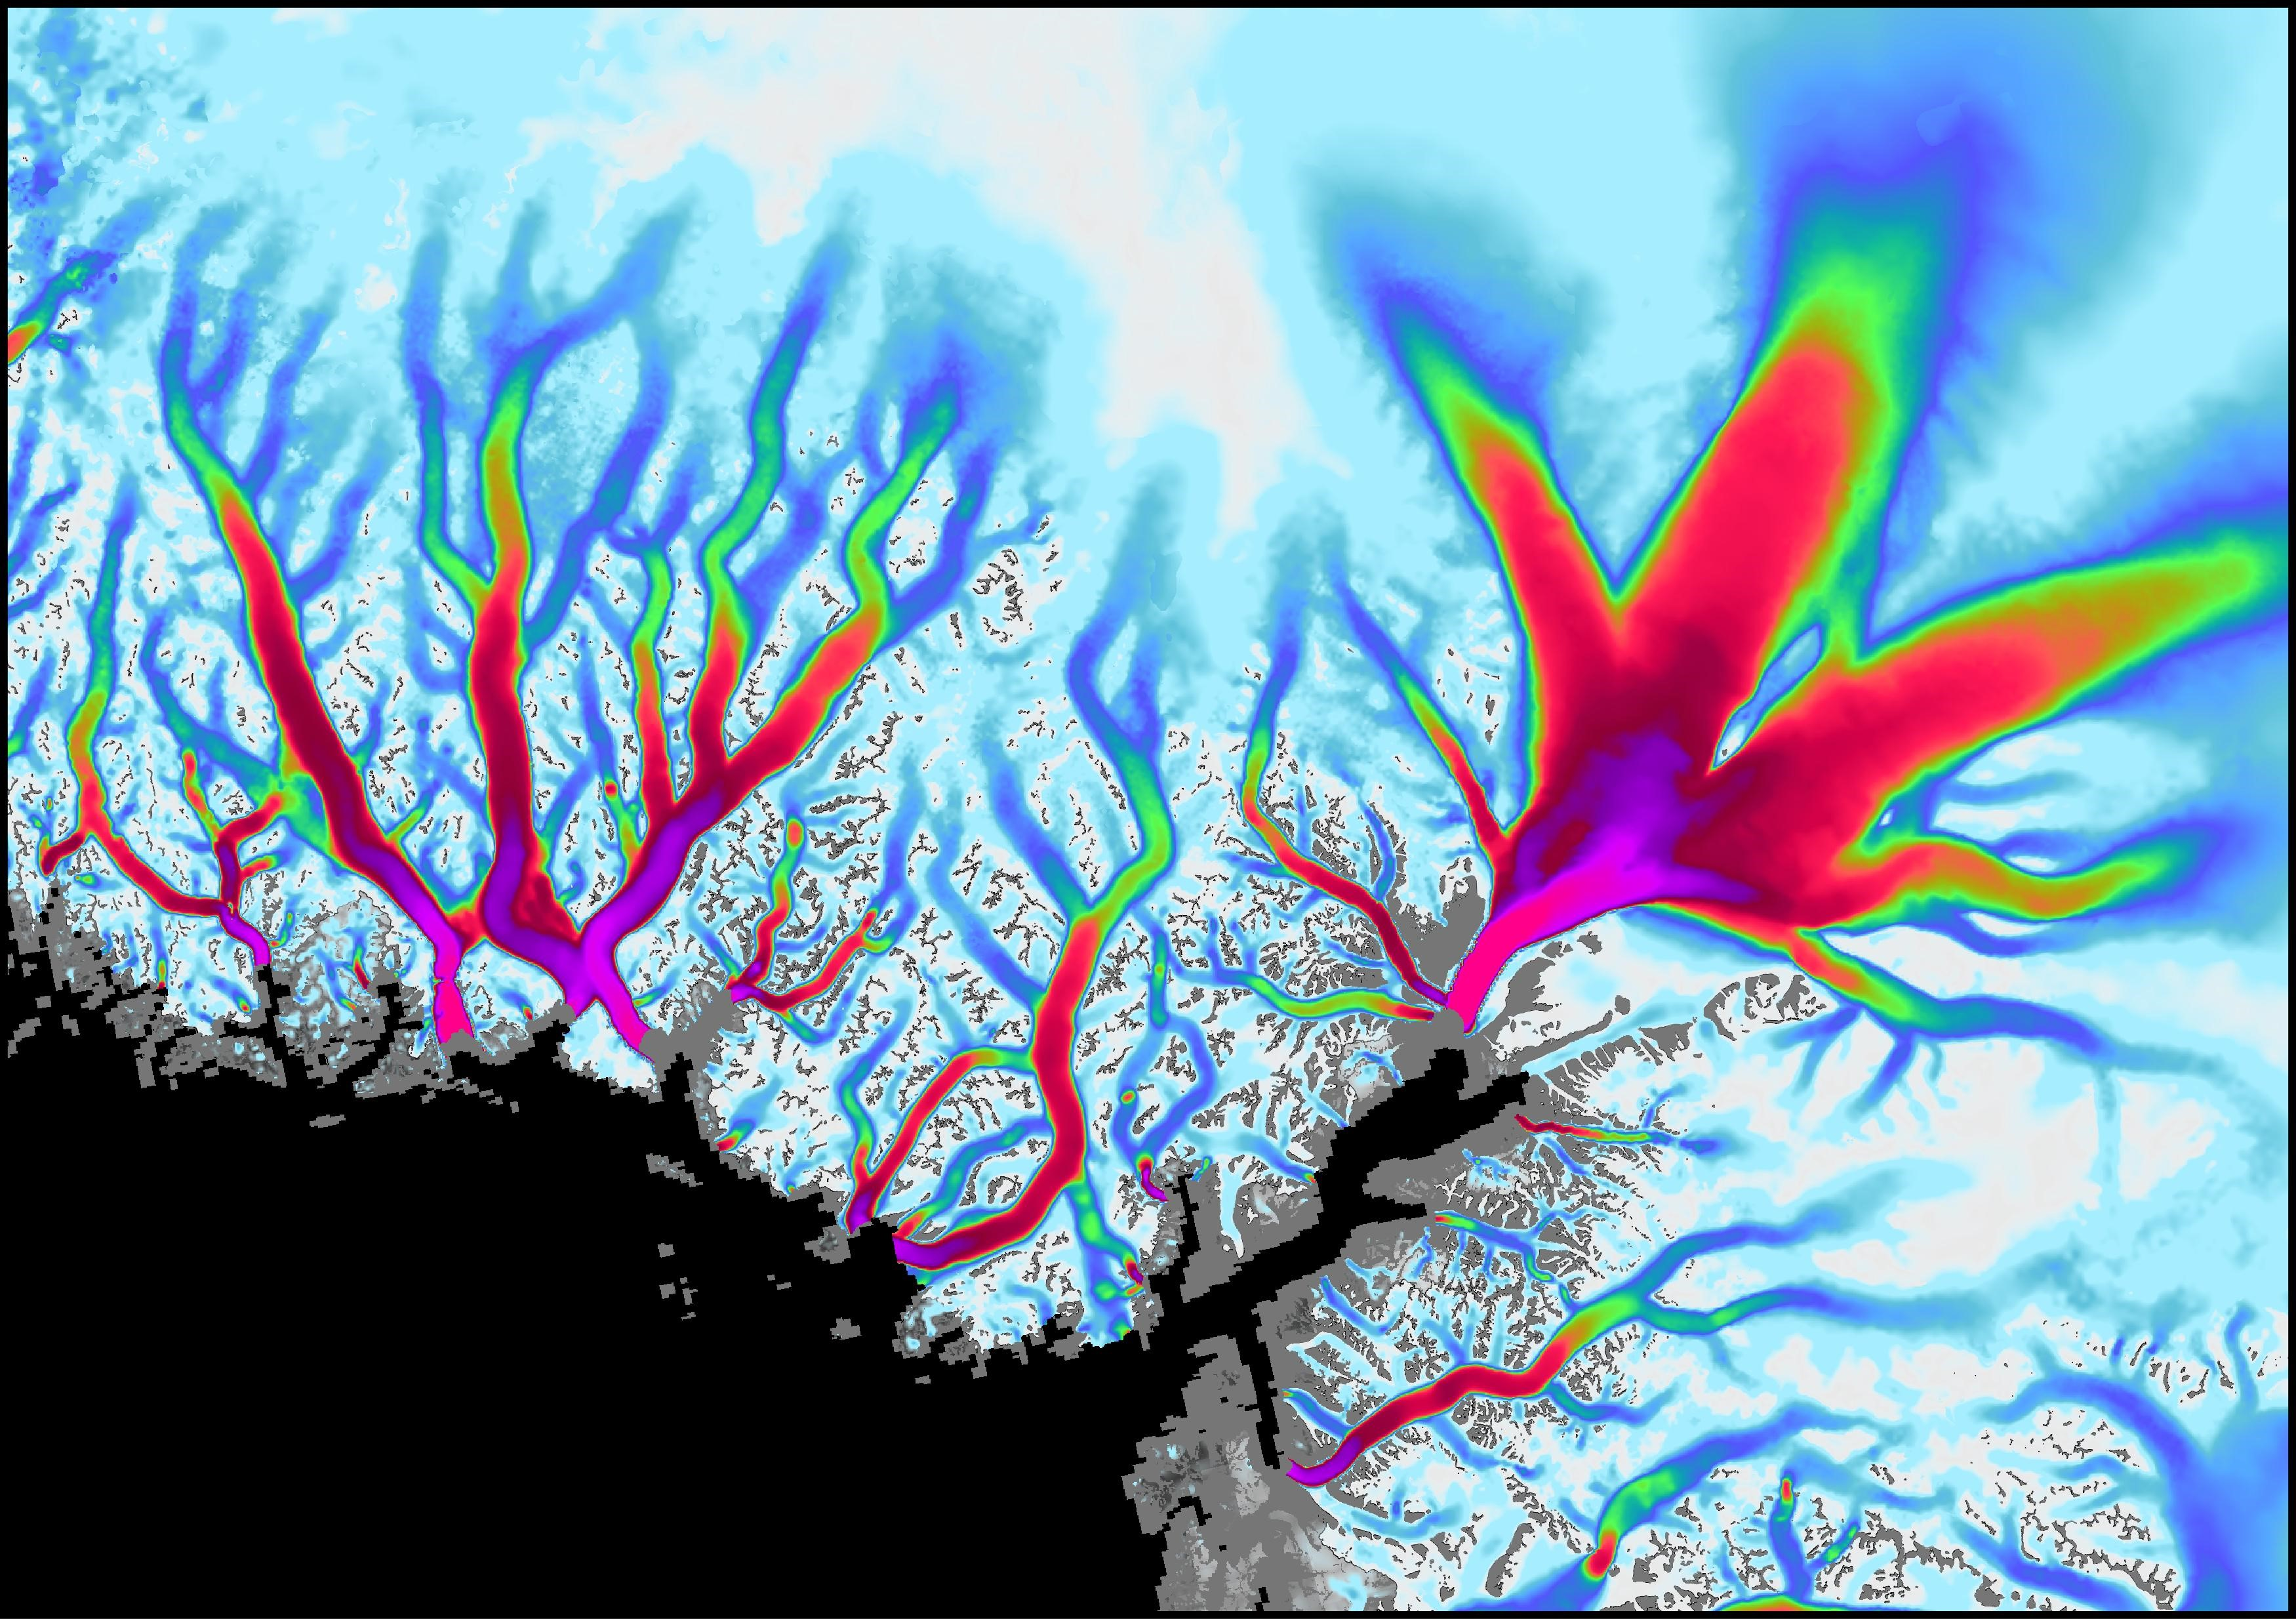 This data visualization shows the flow velocity of glaciers along Greenland's coast.